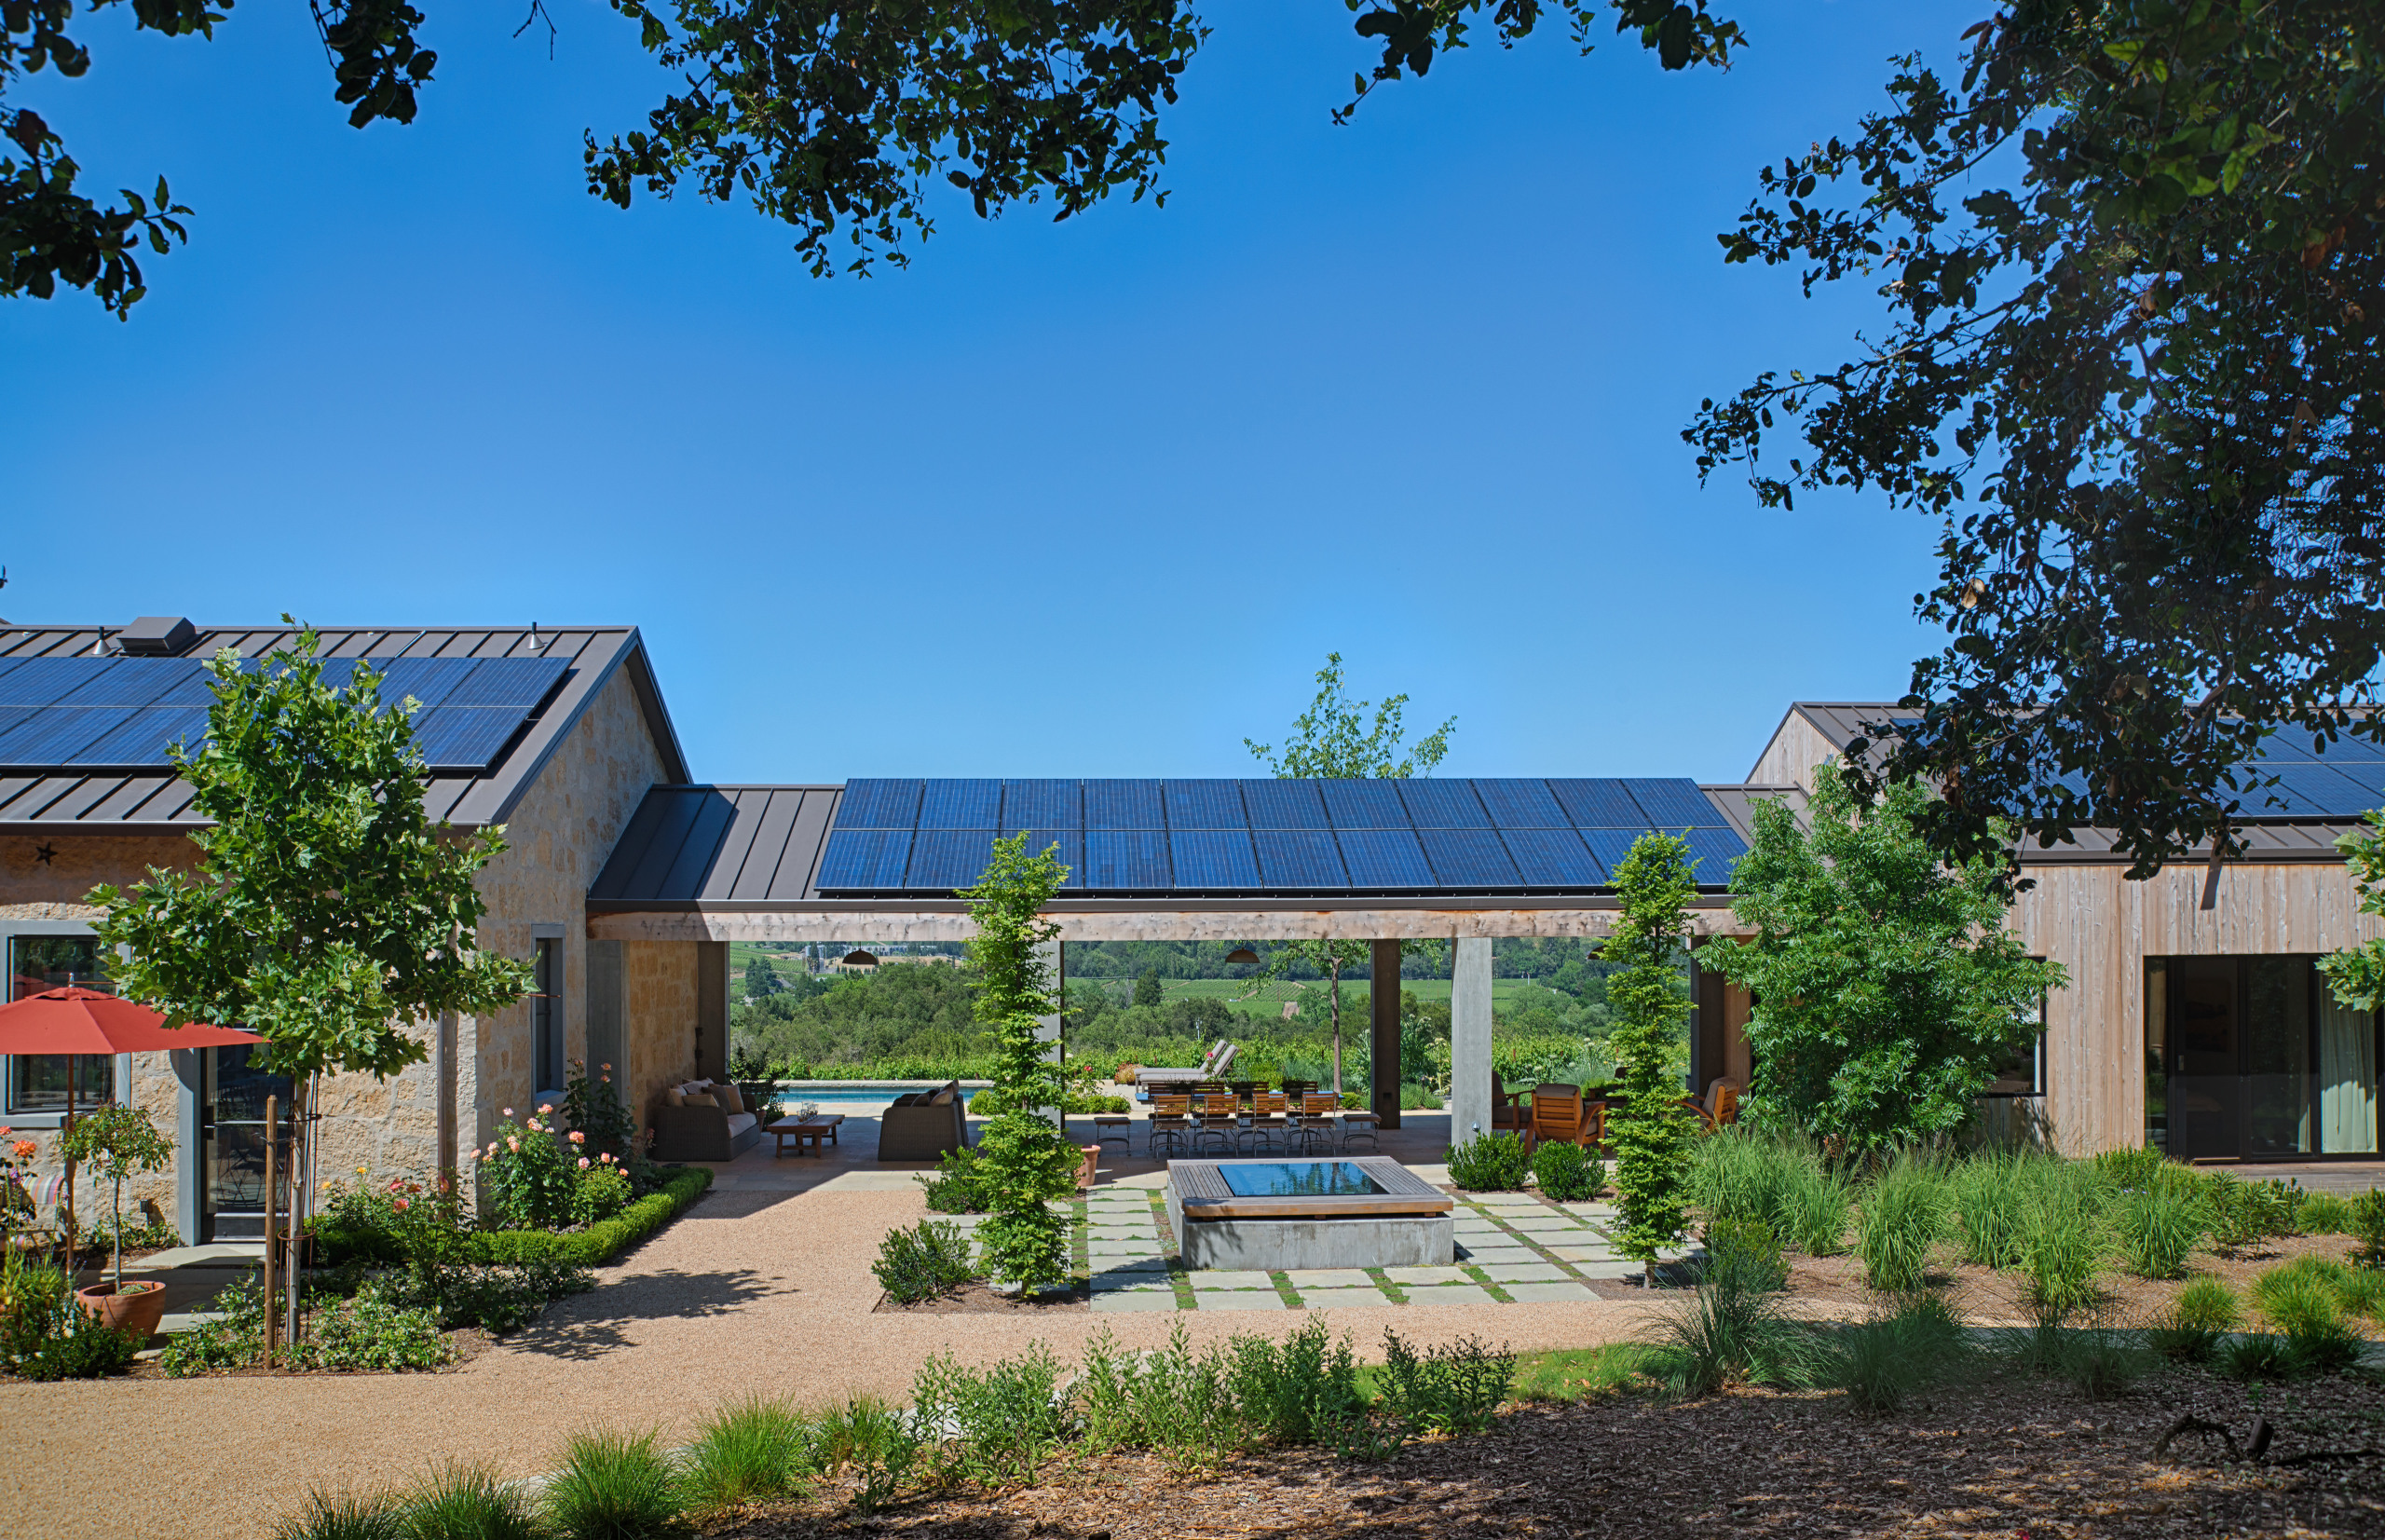 Solar panels on the single storey buildings provide cottage, estate, home, house, plant, property, real estate, residential area, roof, sky, suburb, tree, teal